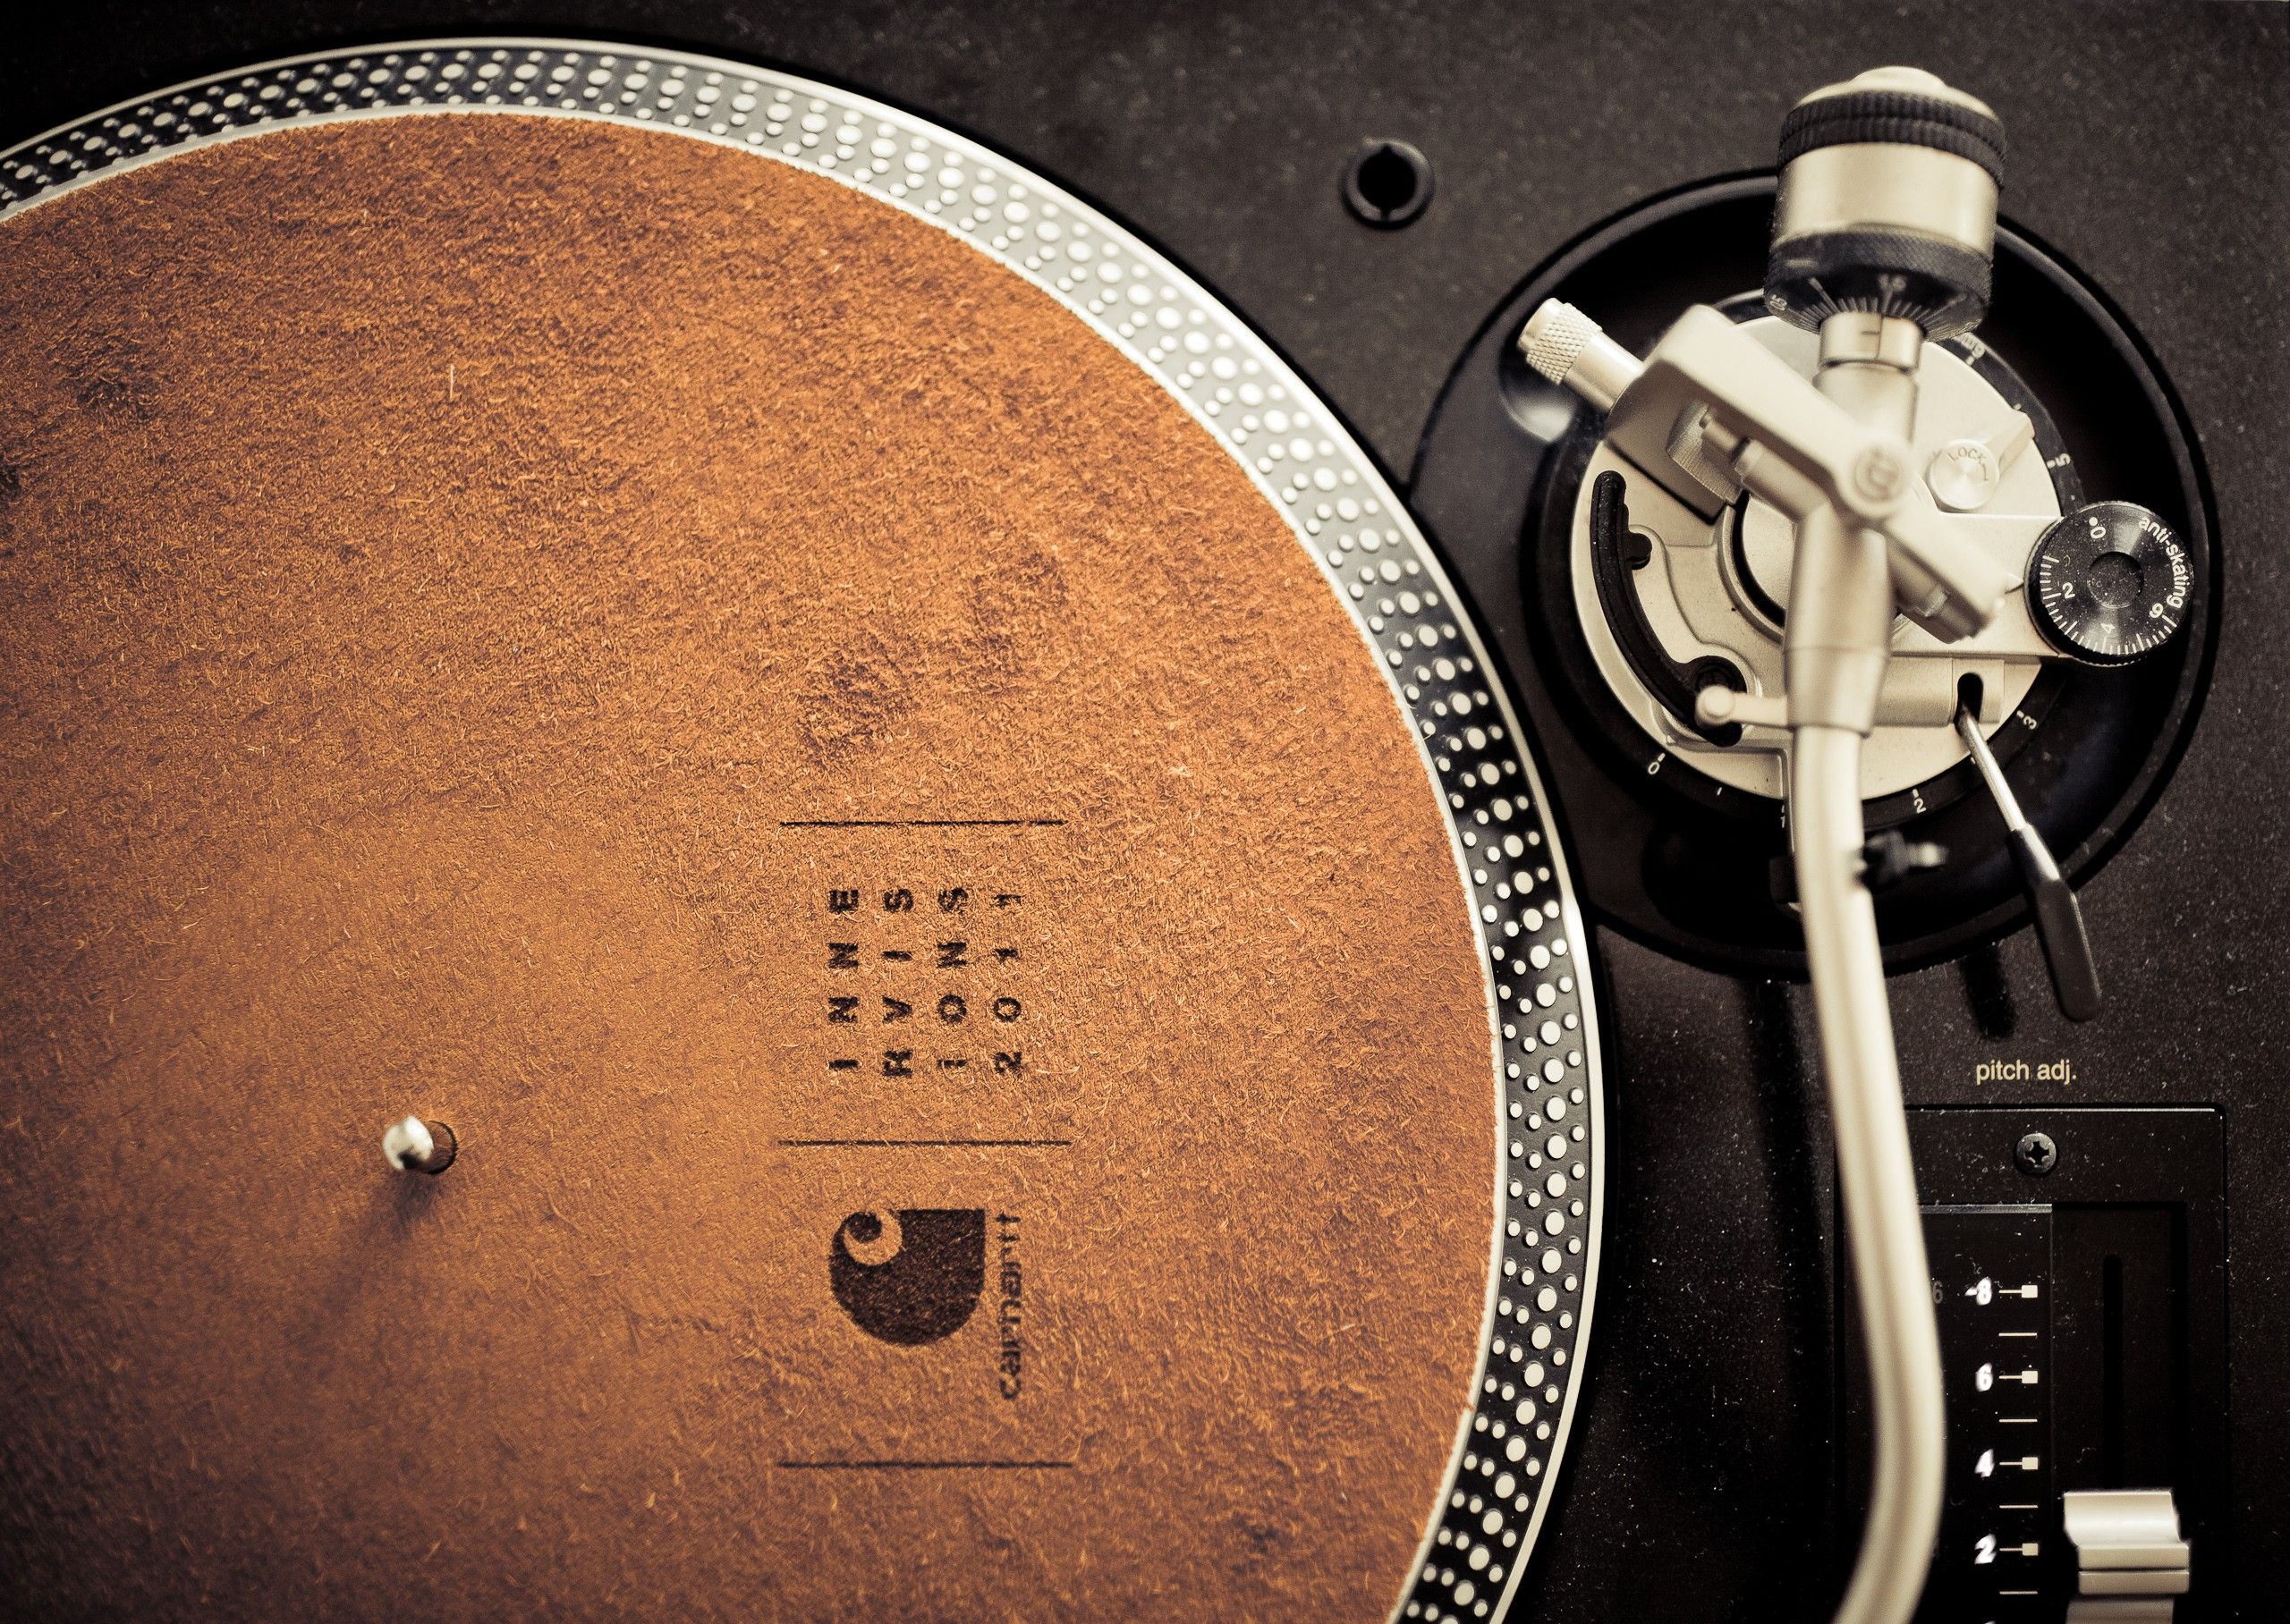 Music Vinyl Wallpaper For Android Wallpaper Gallery Wall